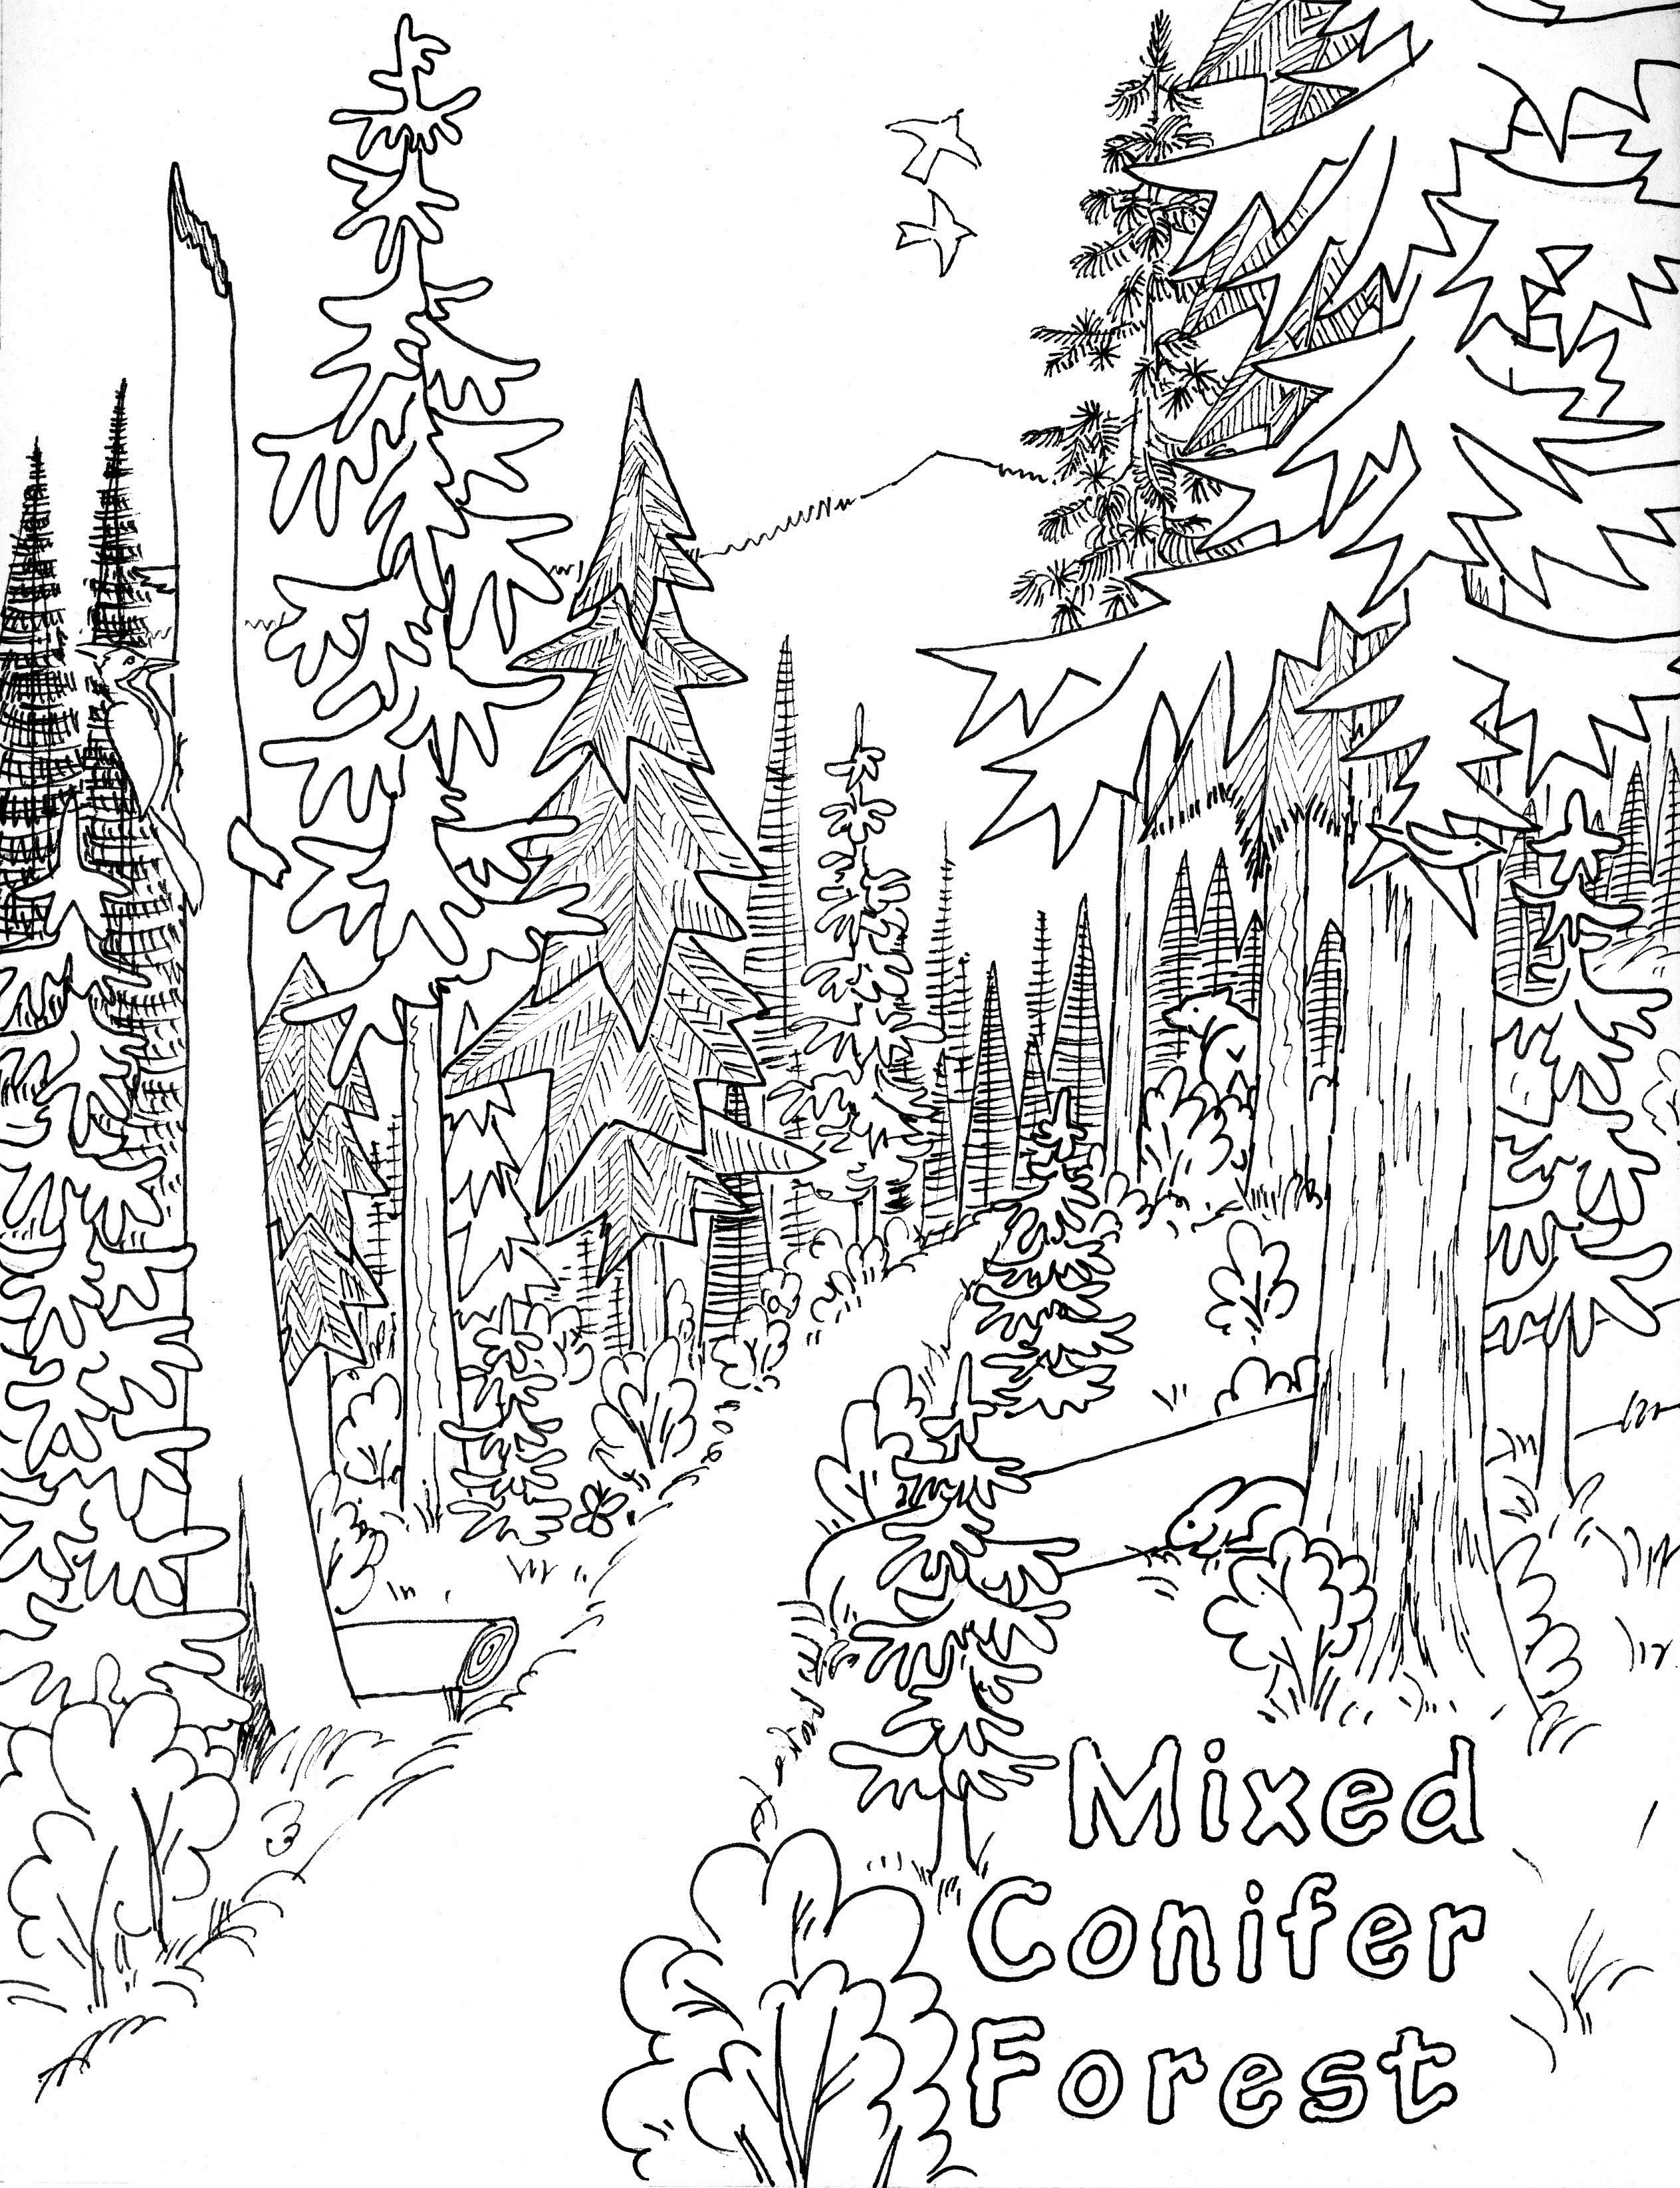 Free Printable Nature Coloring Pages For Kids   Nature Coloring - Free Printable Nature Coloring Pages